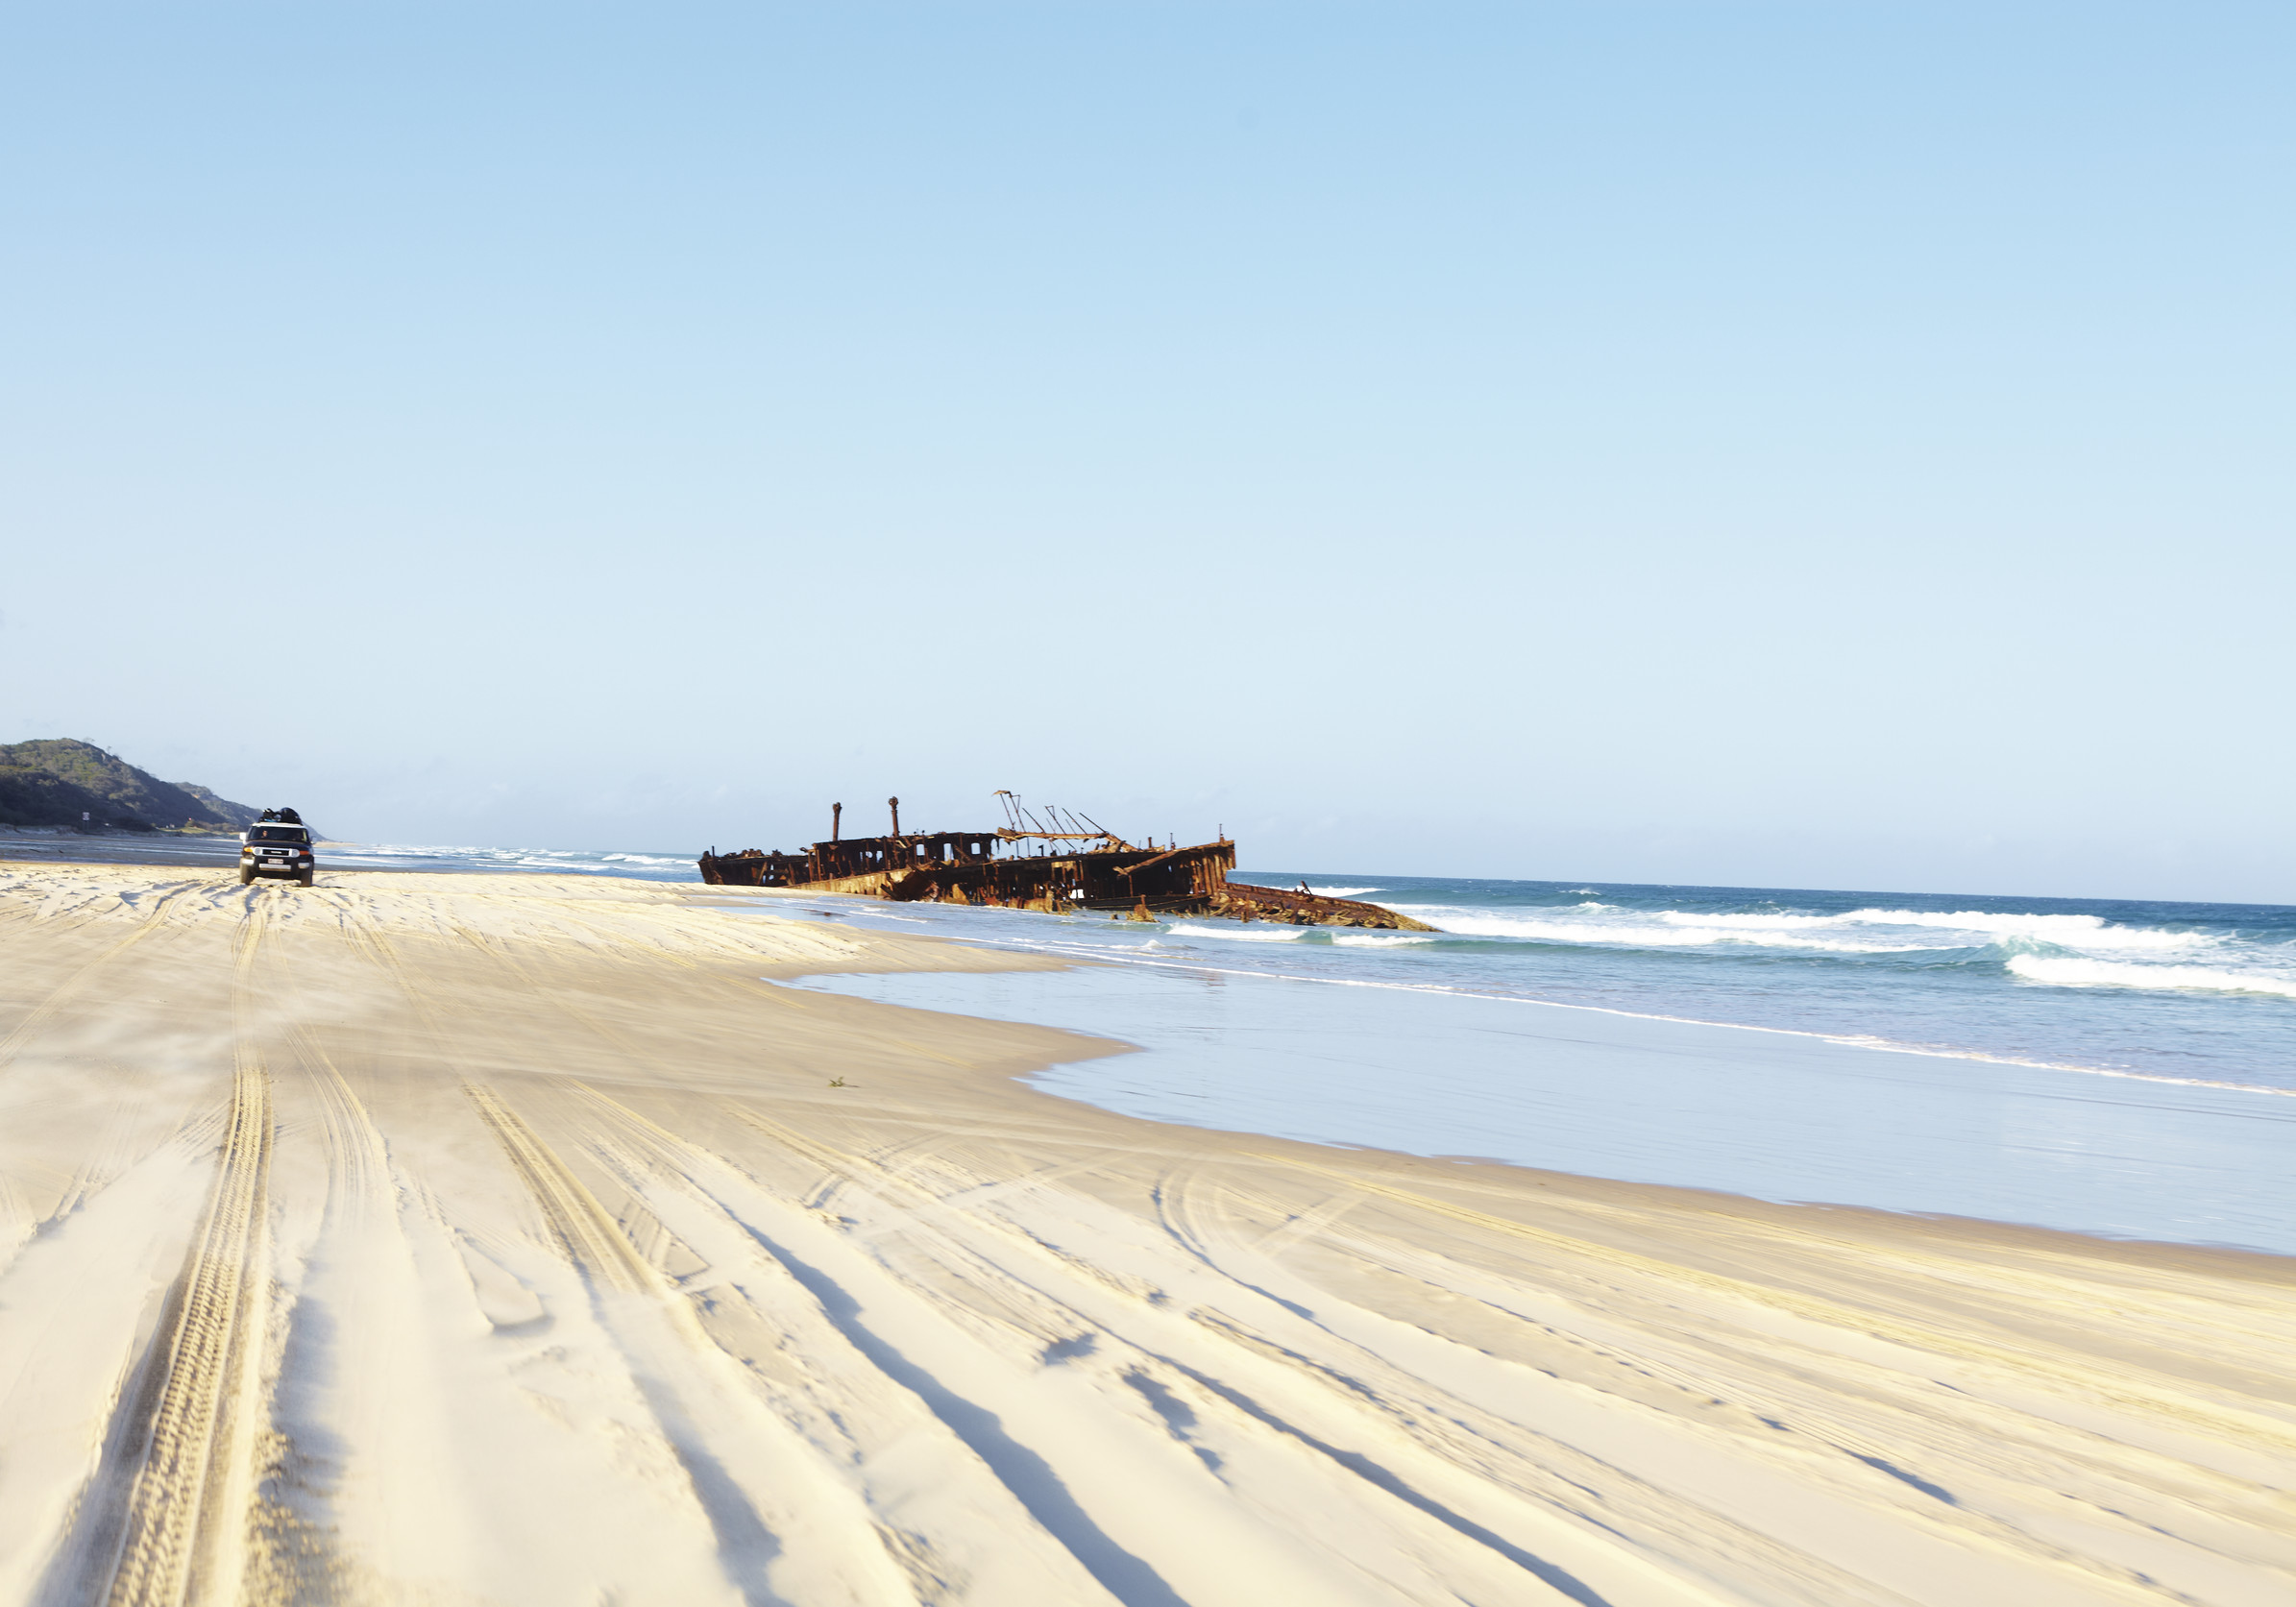 the_wreck_of_the_s_s_maheno_near_eli_creek_fraser_island_qld.jpg